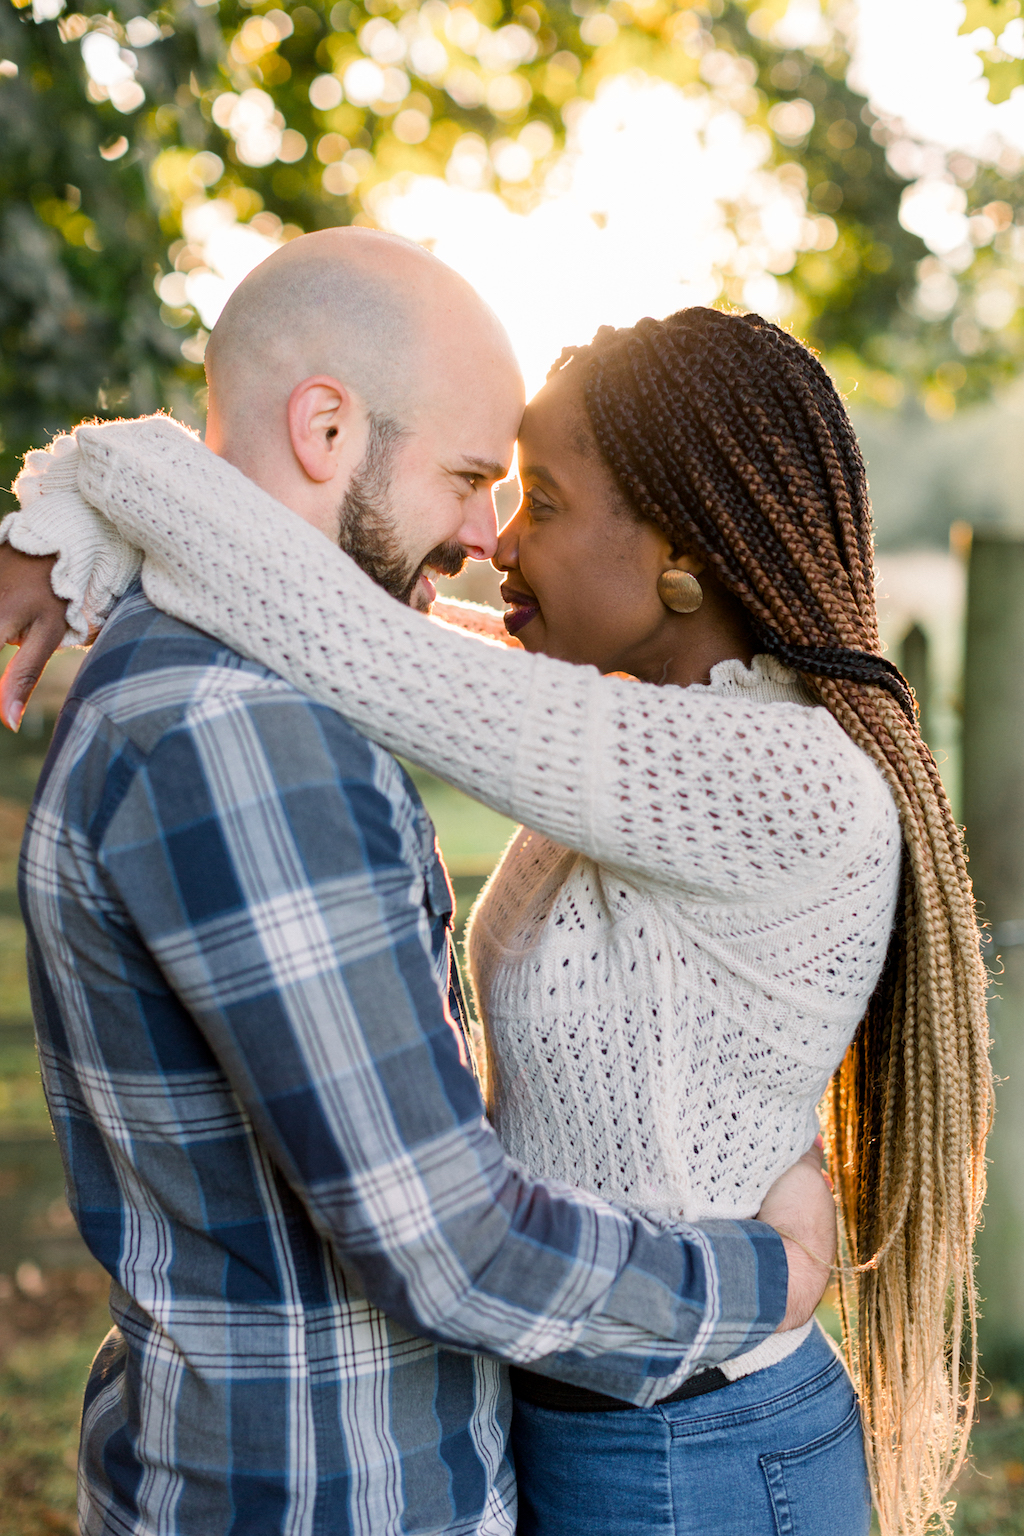 romantic outdoor photoshoot for engaged couples, Hannah K Photography